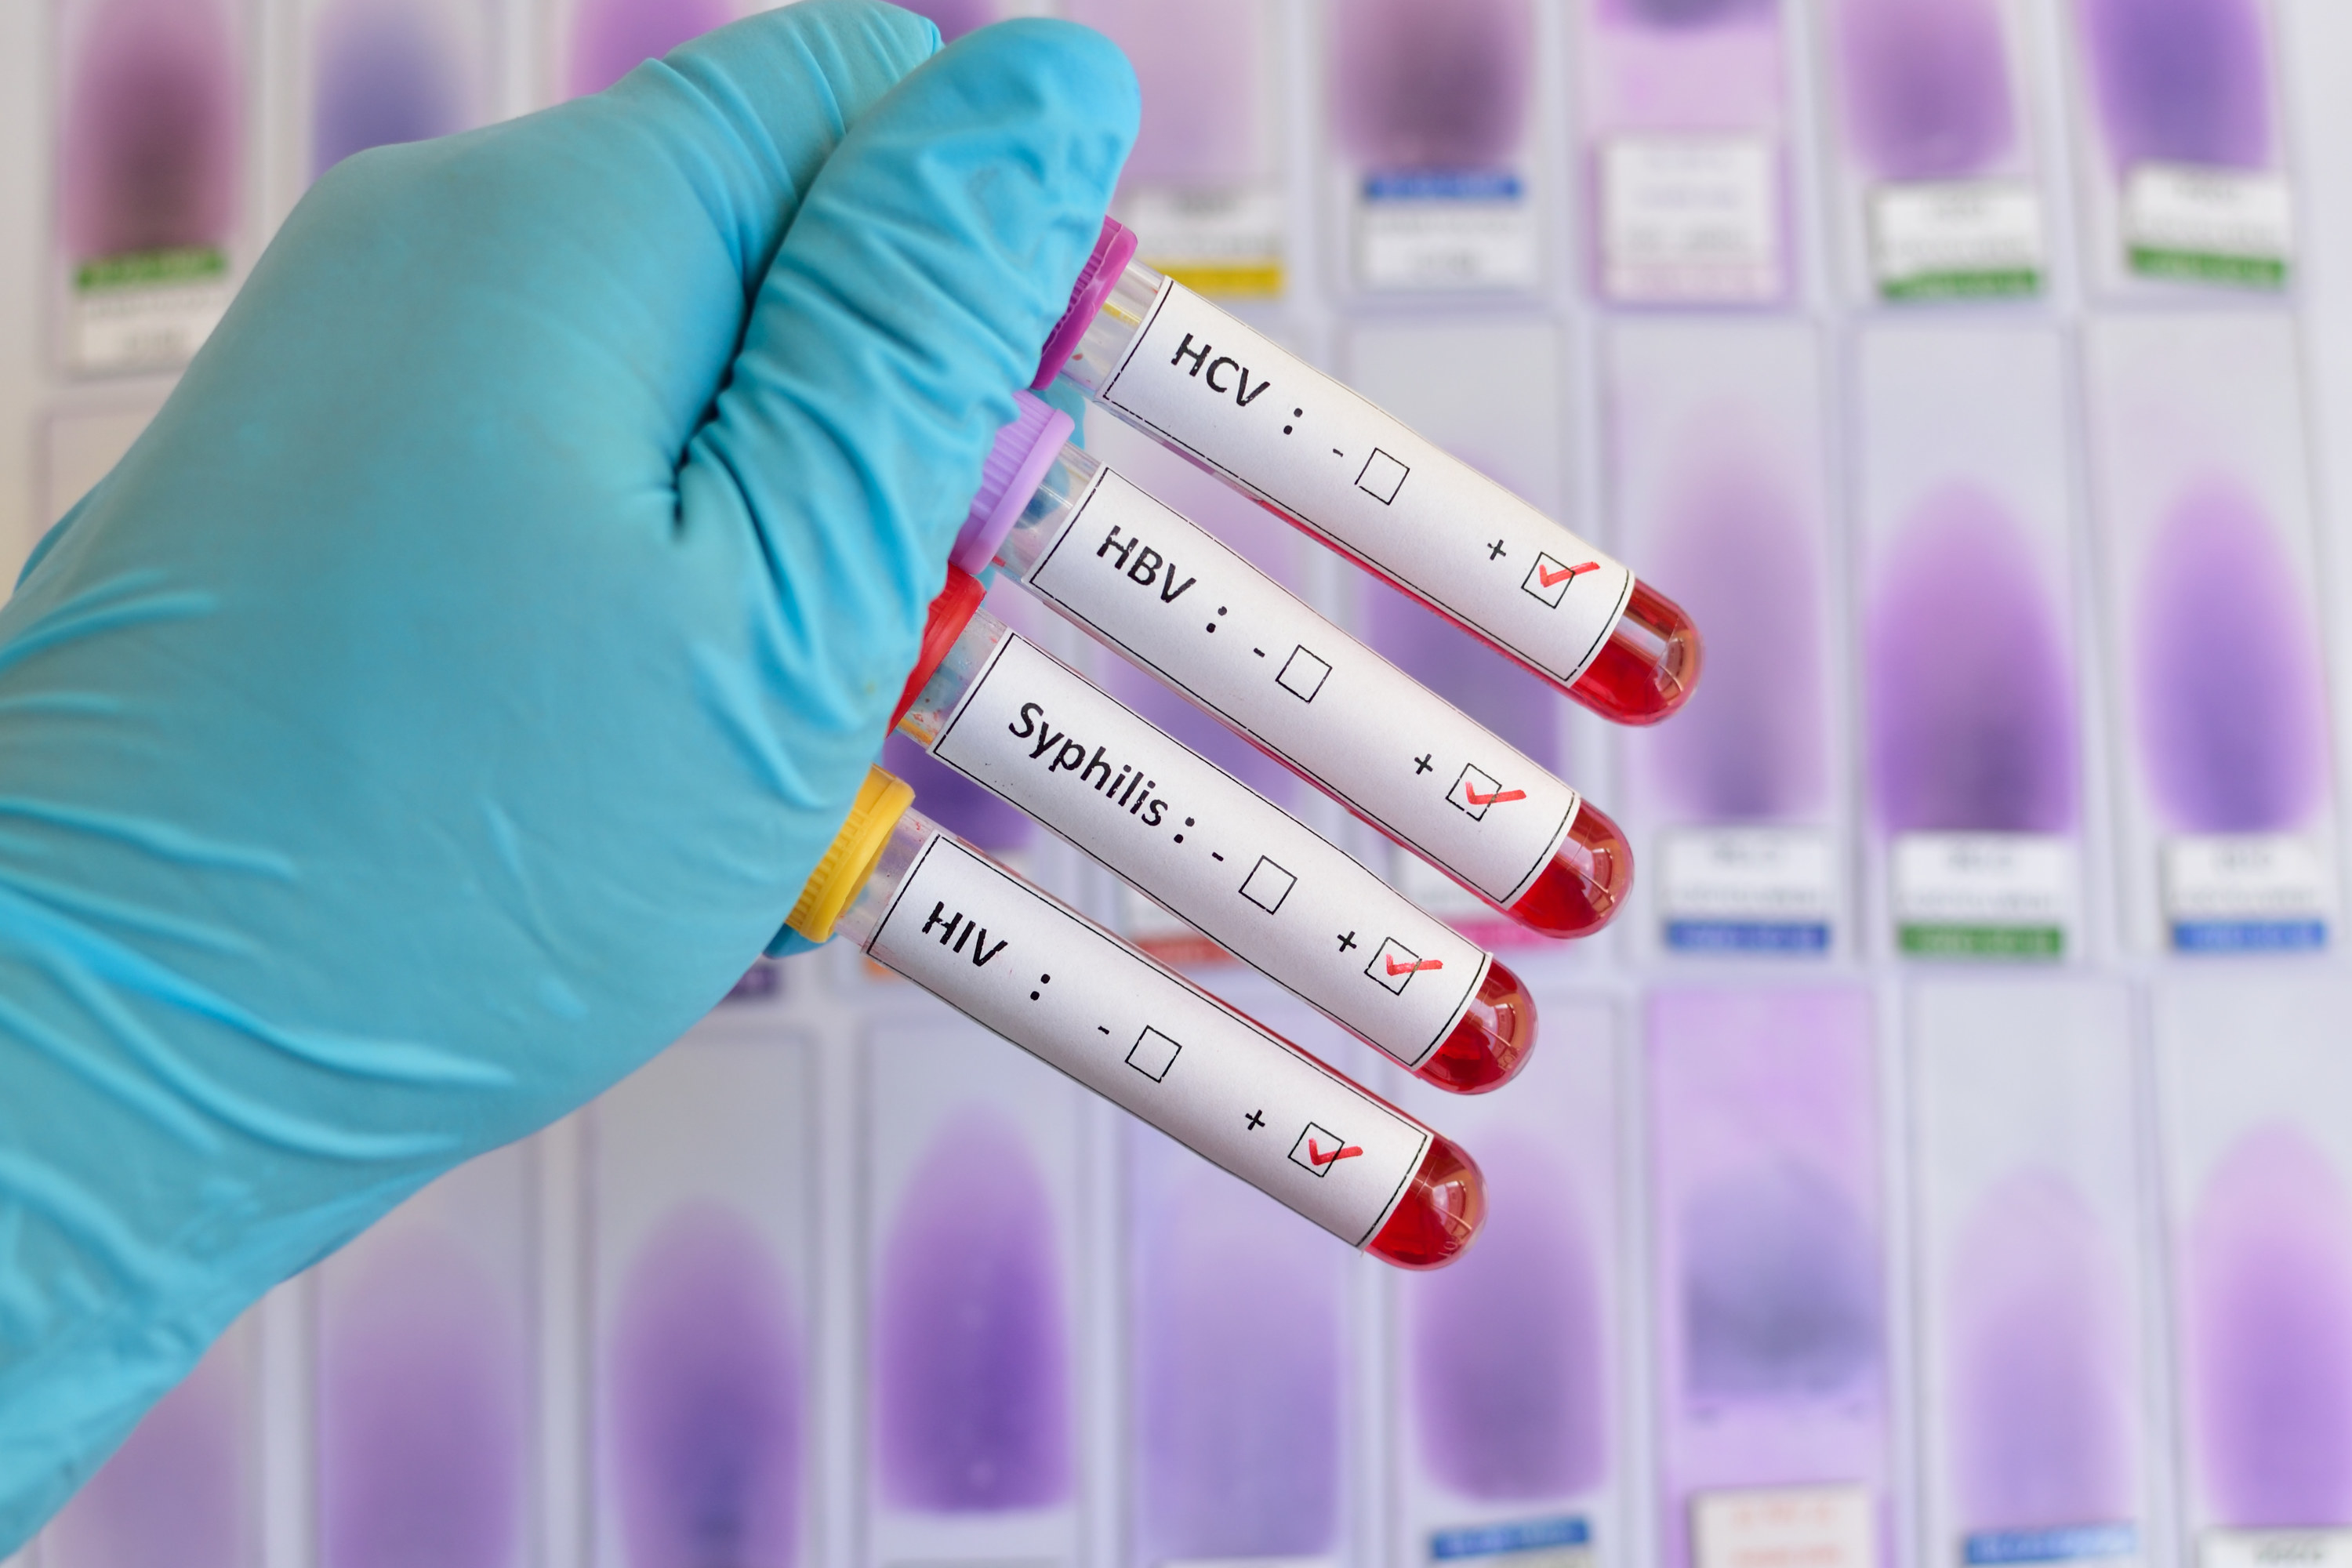 A stock image of a doctor holding up vials of blood for STD testing